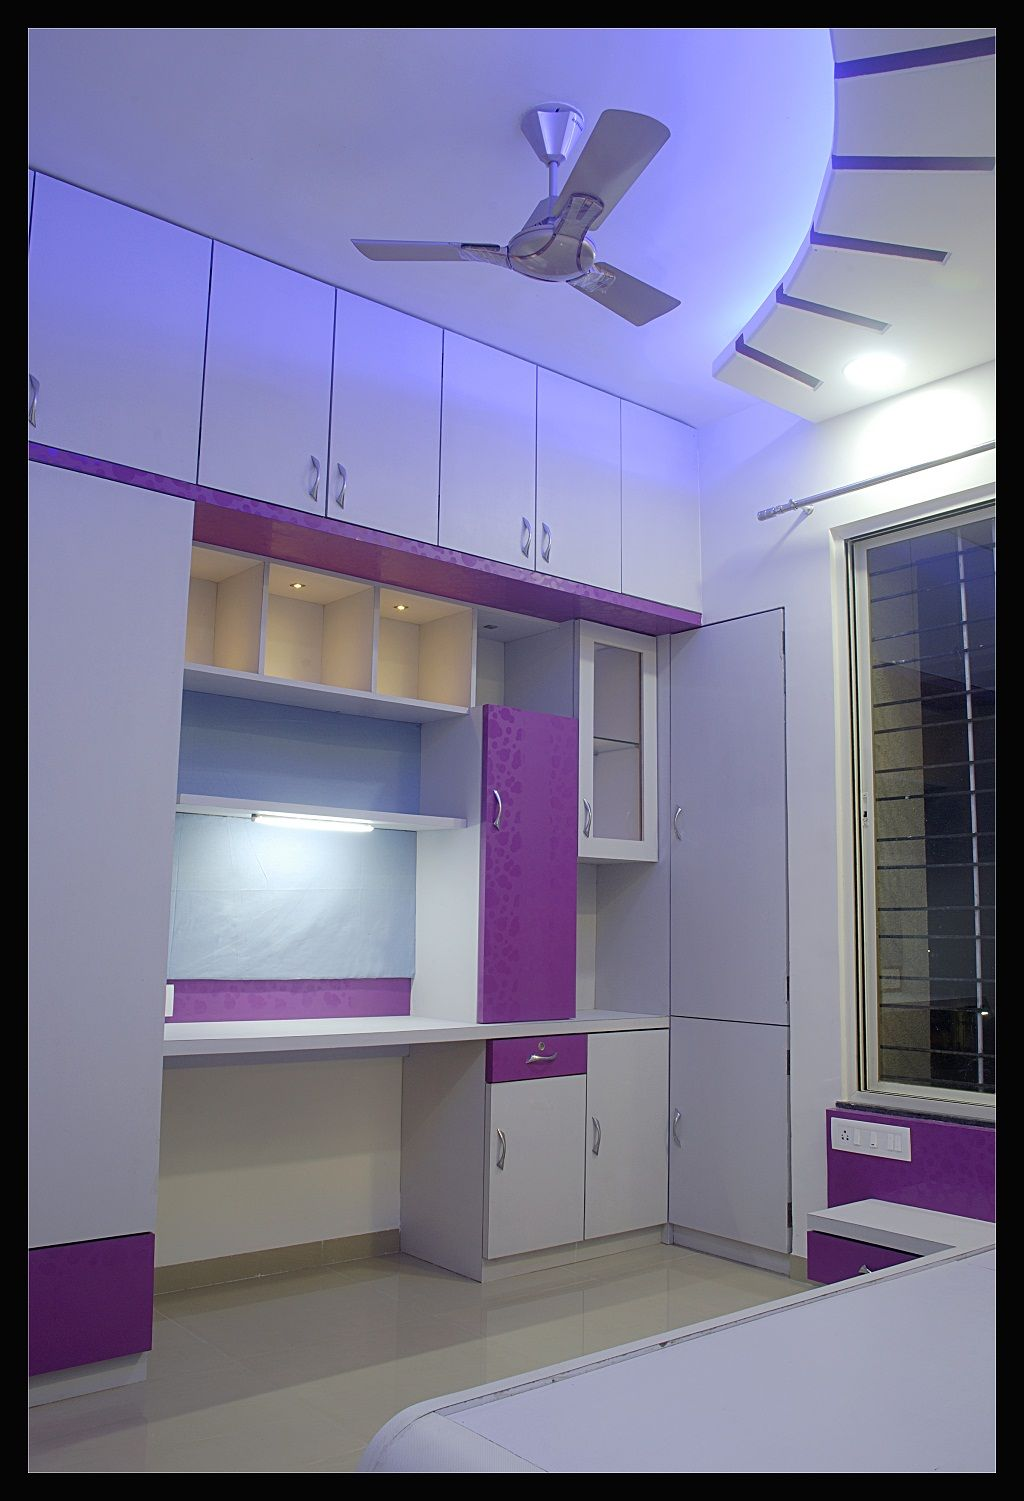 Ceiling Beds Daughters Bedroom In Magenta Colour Scheme In Laminate Glass